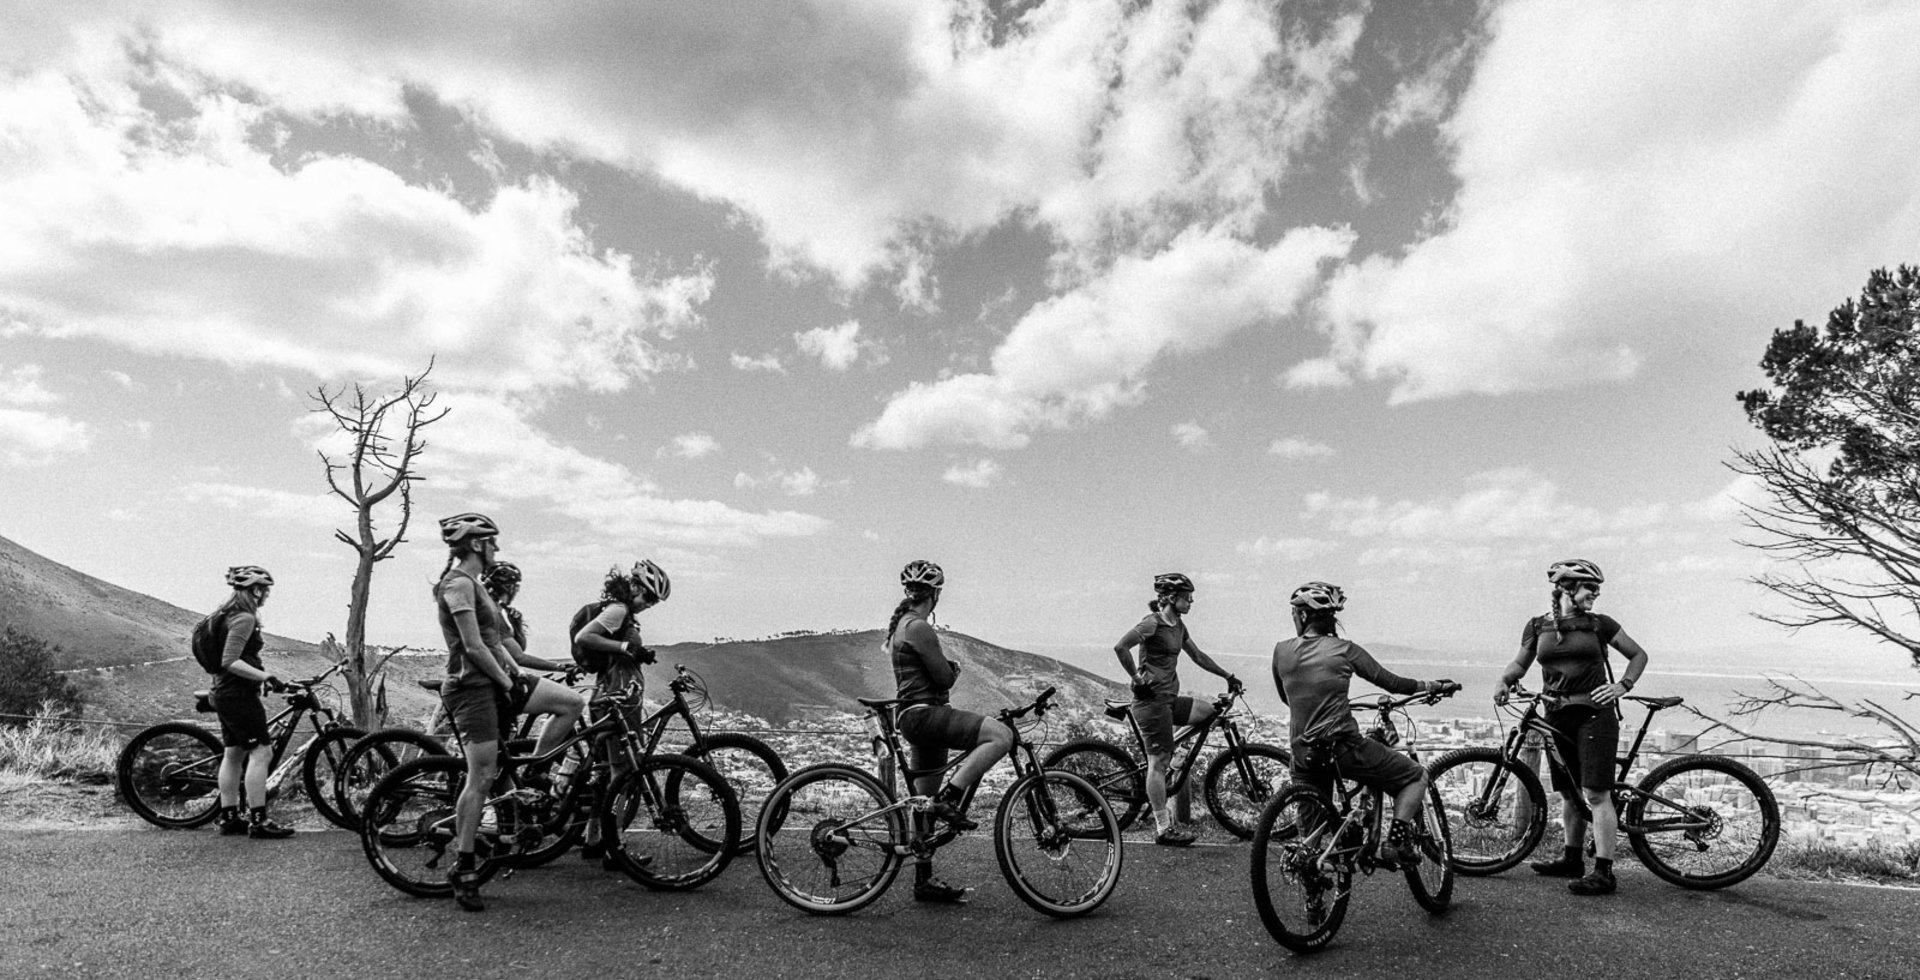 The Trail Squad exploring South Africa before the Cape Epic. While everyone trained on their own, this was the whole crew's first ride together.